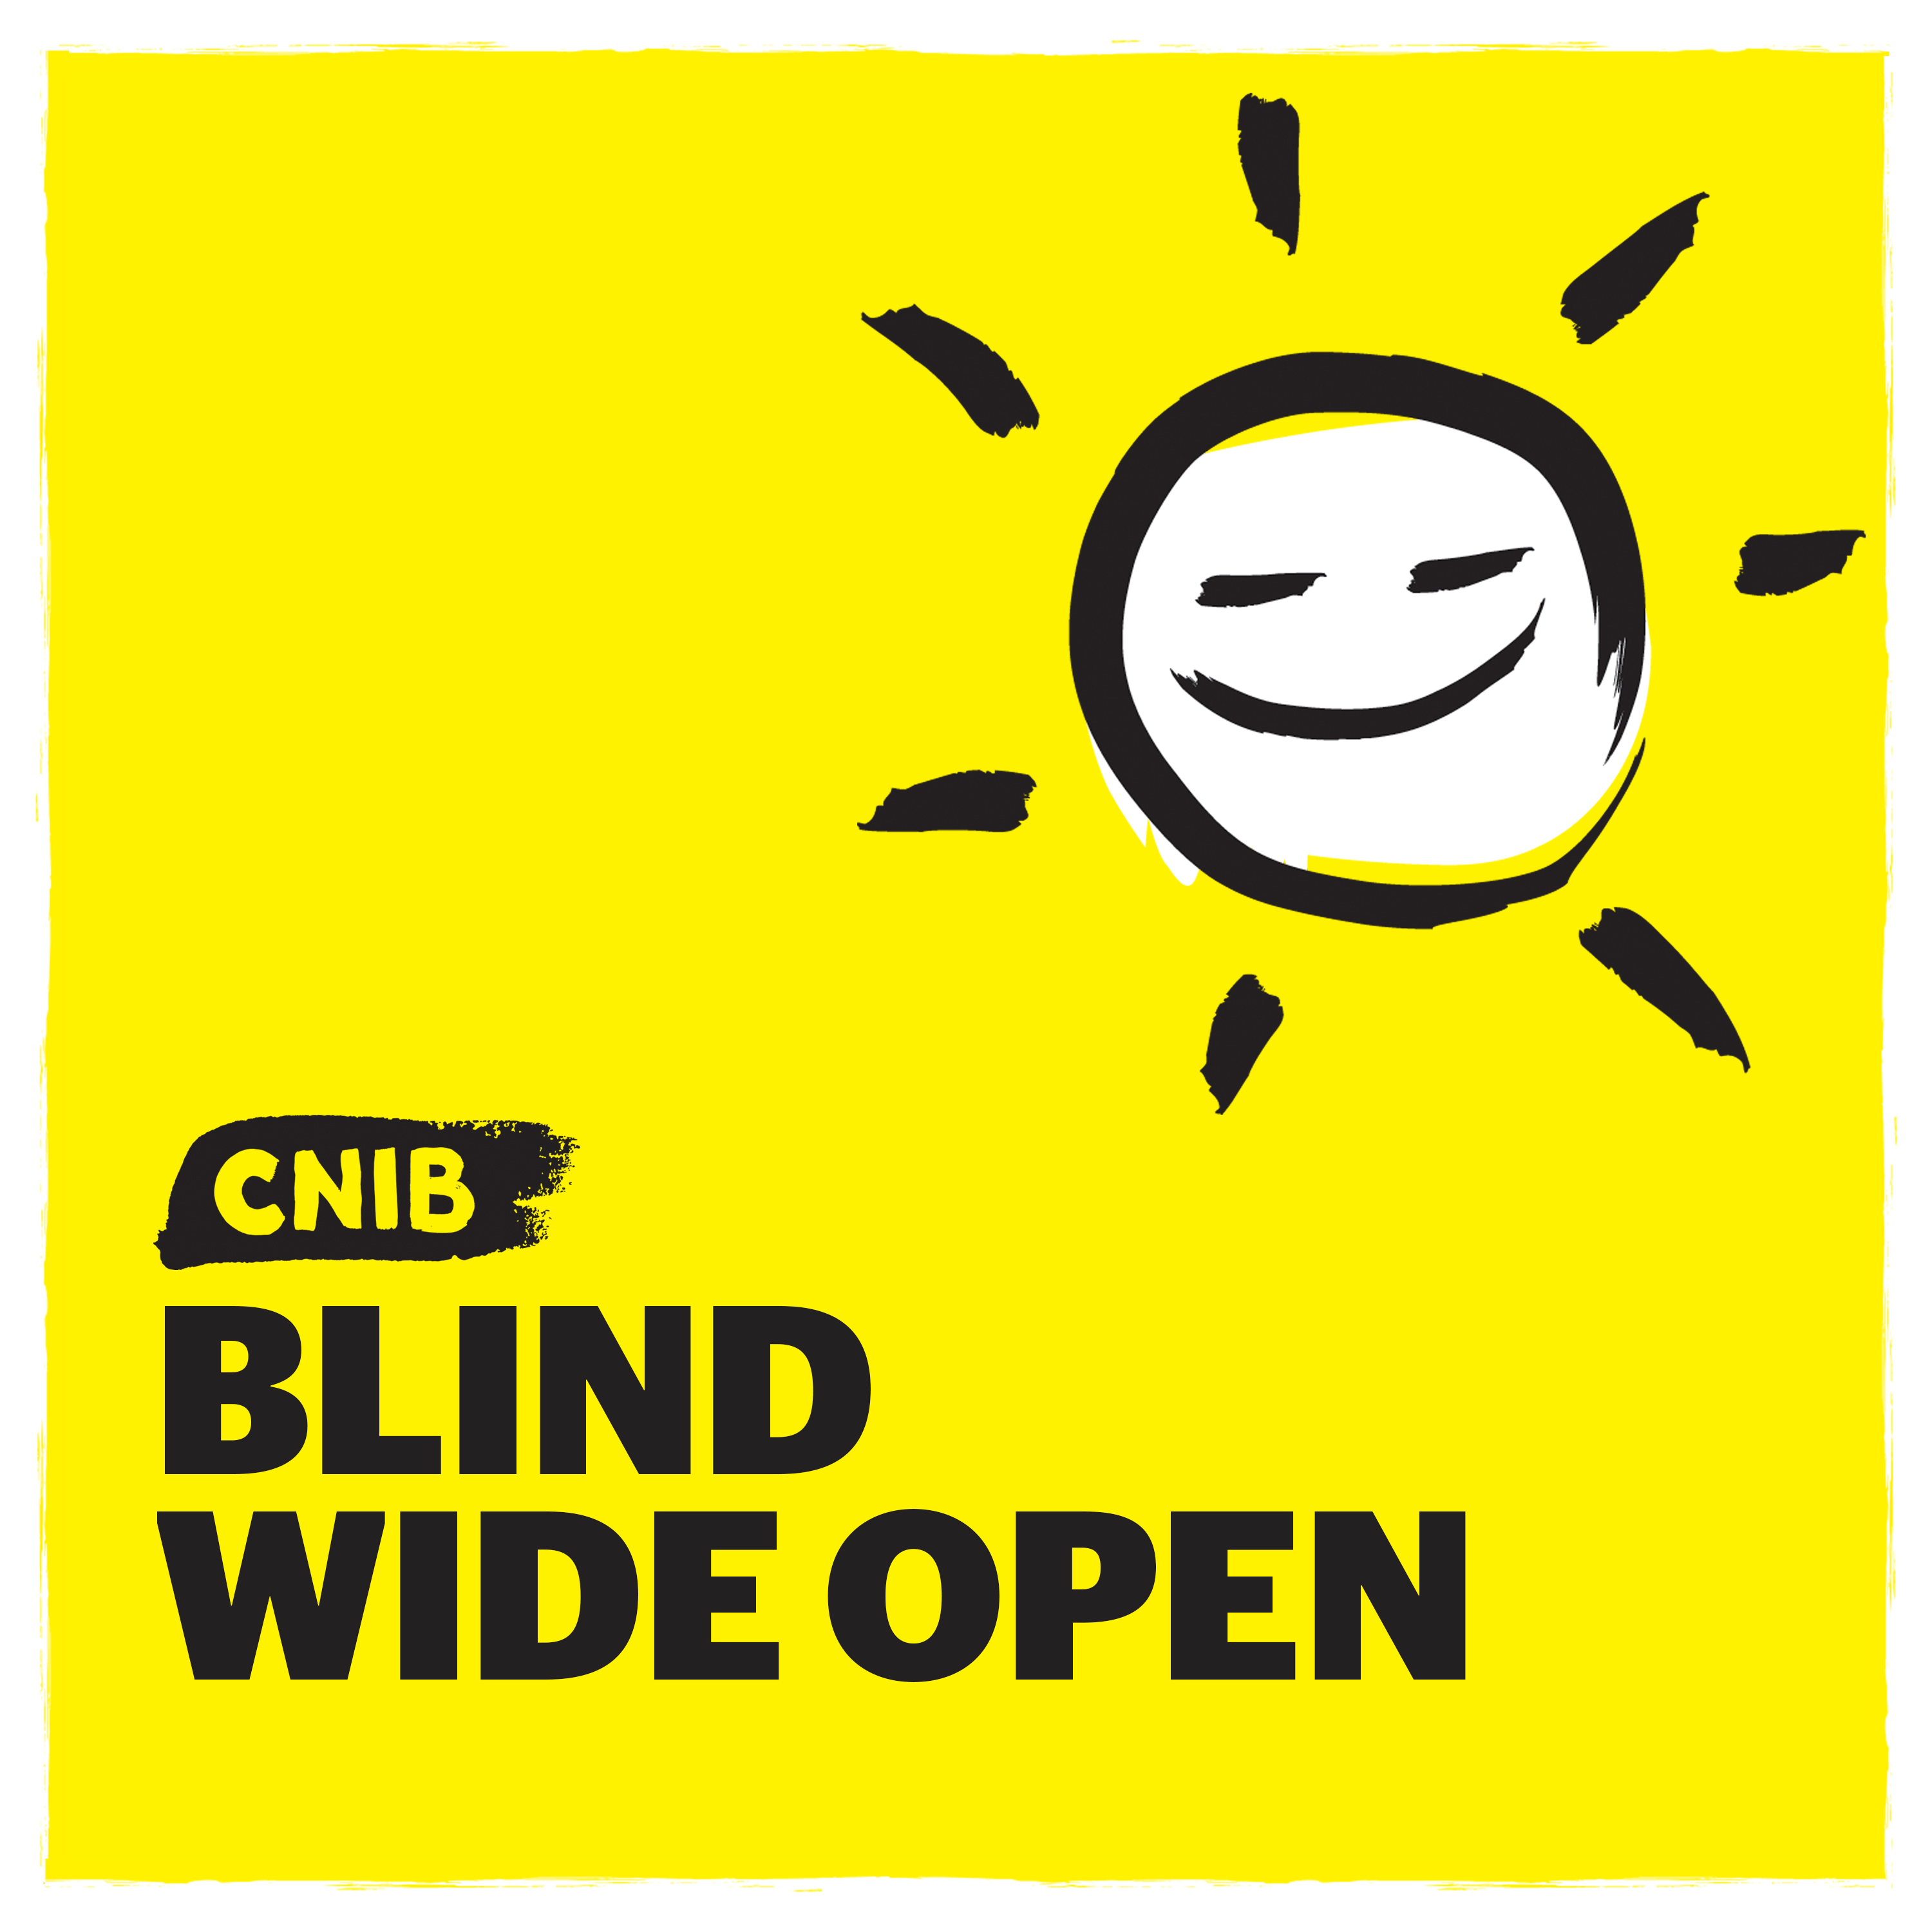 CNIB Blind Wide Open logo. An illustration of a sunshine on a yellow background.